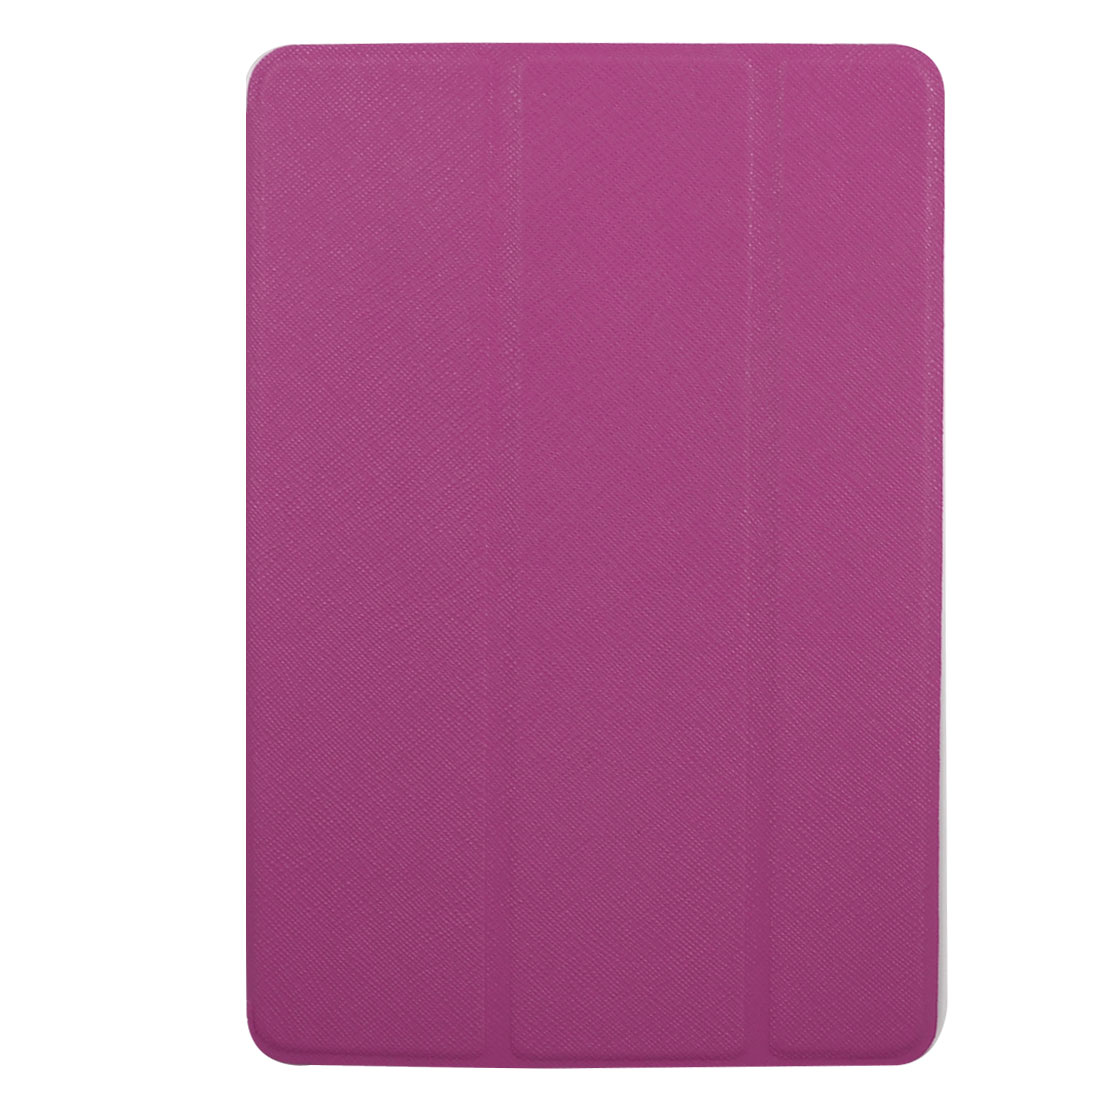 Fuchsia Faux Leather Stand Case Cover Pouch Protector for Apple iPad Mini